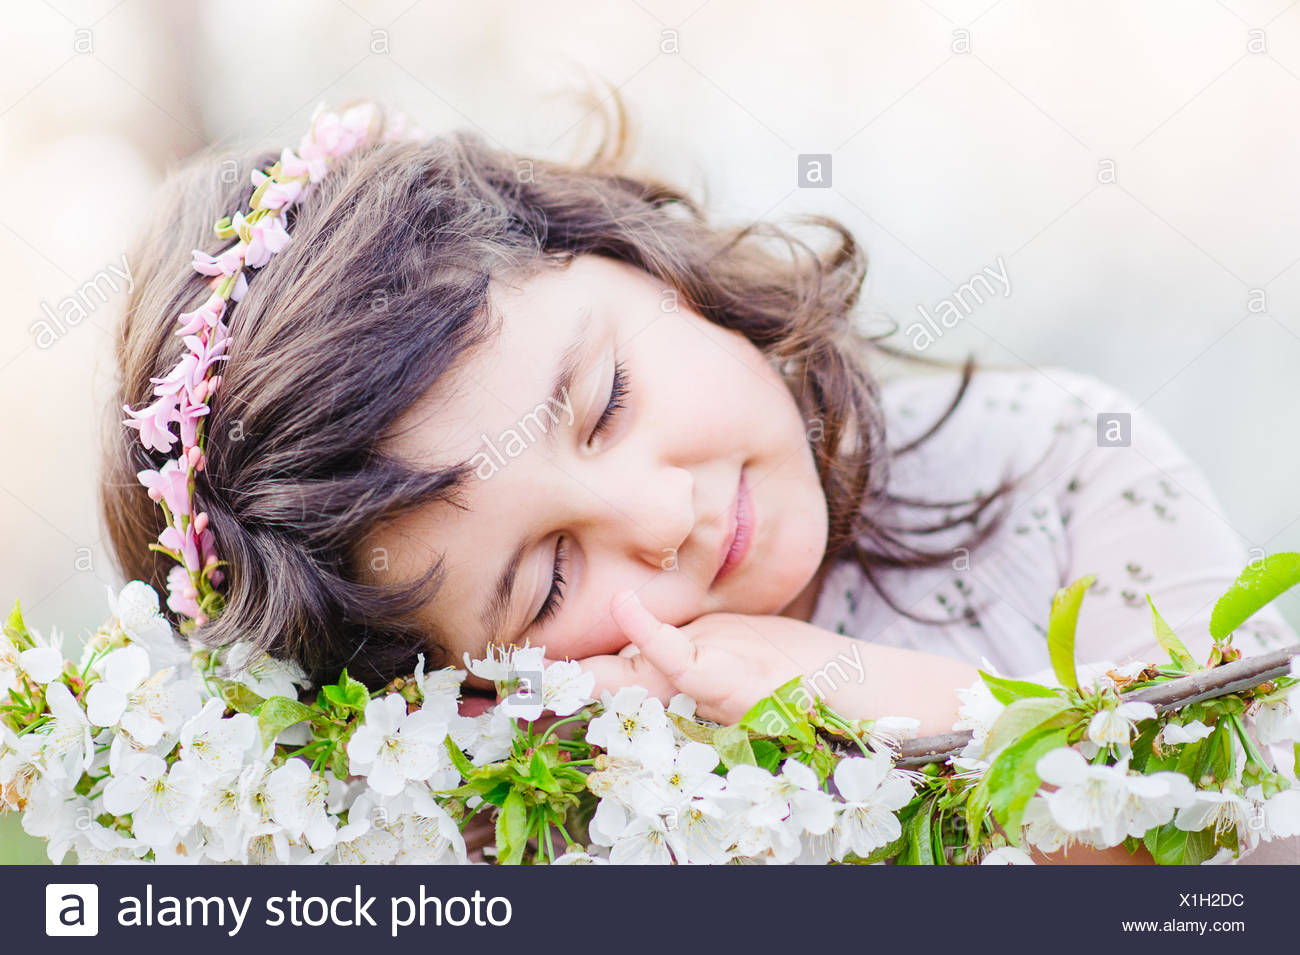 Cute girl (4-5) Dormir en flores Foto de stock